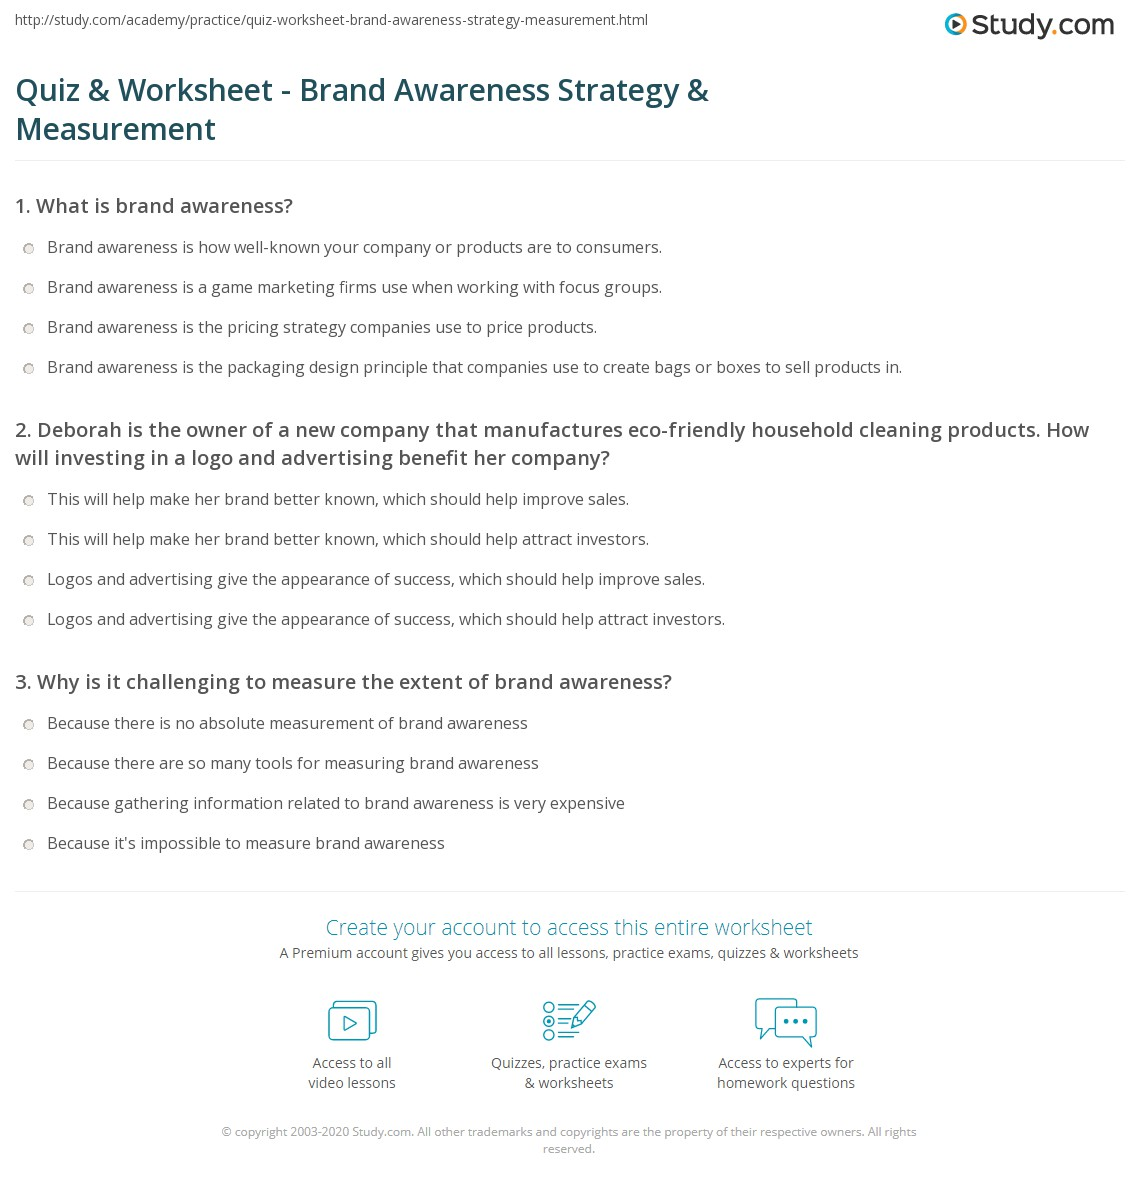 Quiz Worksheet Brand Awareness Strategy Measurement – Metrics and Measurement Worksheet